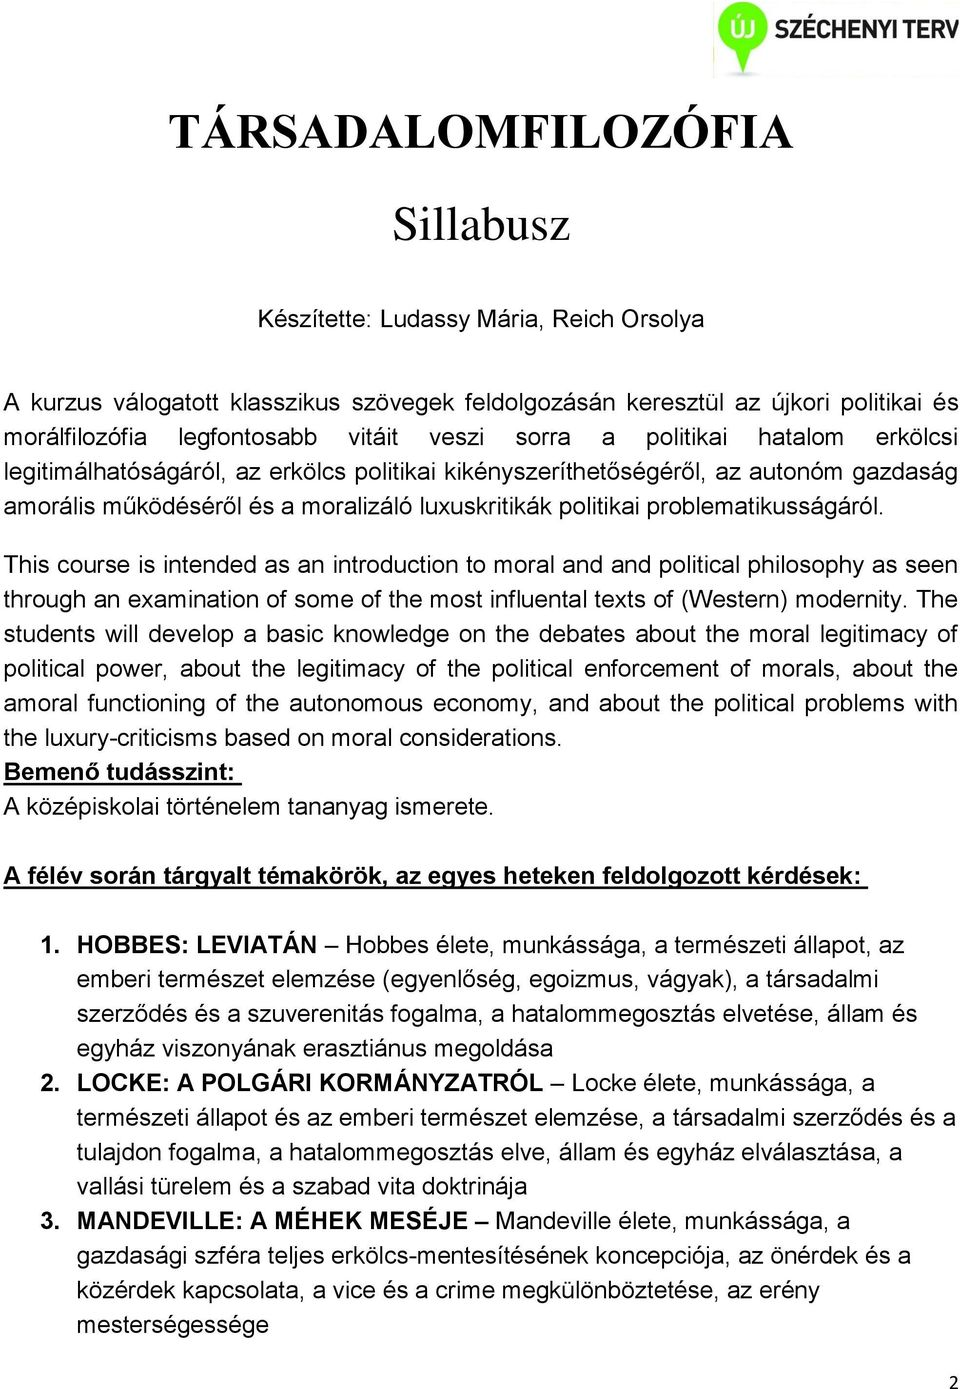 problematikusságáról. This course is intended as an introduction to moral and and political philosophy as seen through an examination of some of the most influental texts of (Western) modernity.